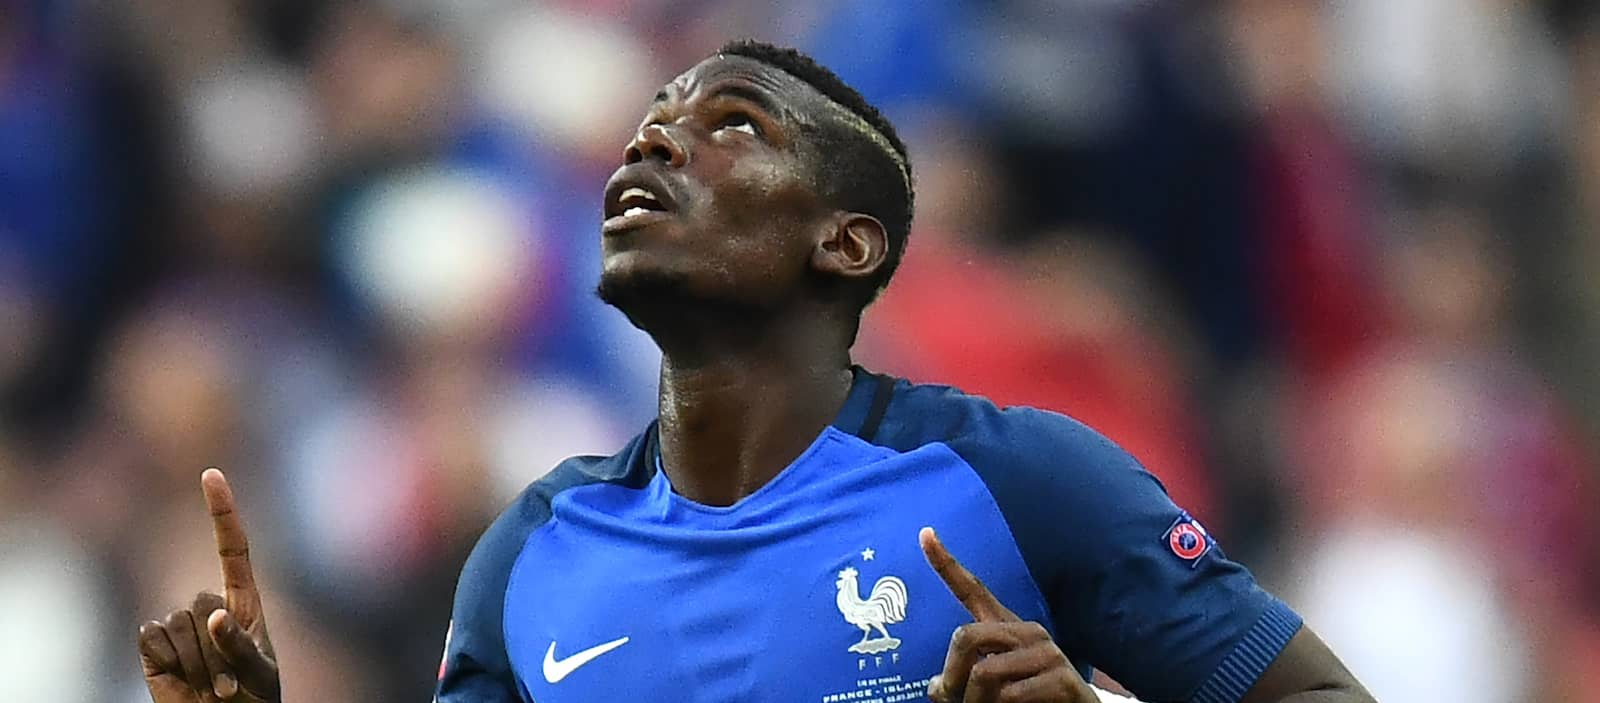 Paul Pogba's agent says reports of Man United meeting are bulls**t